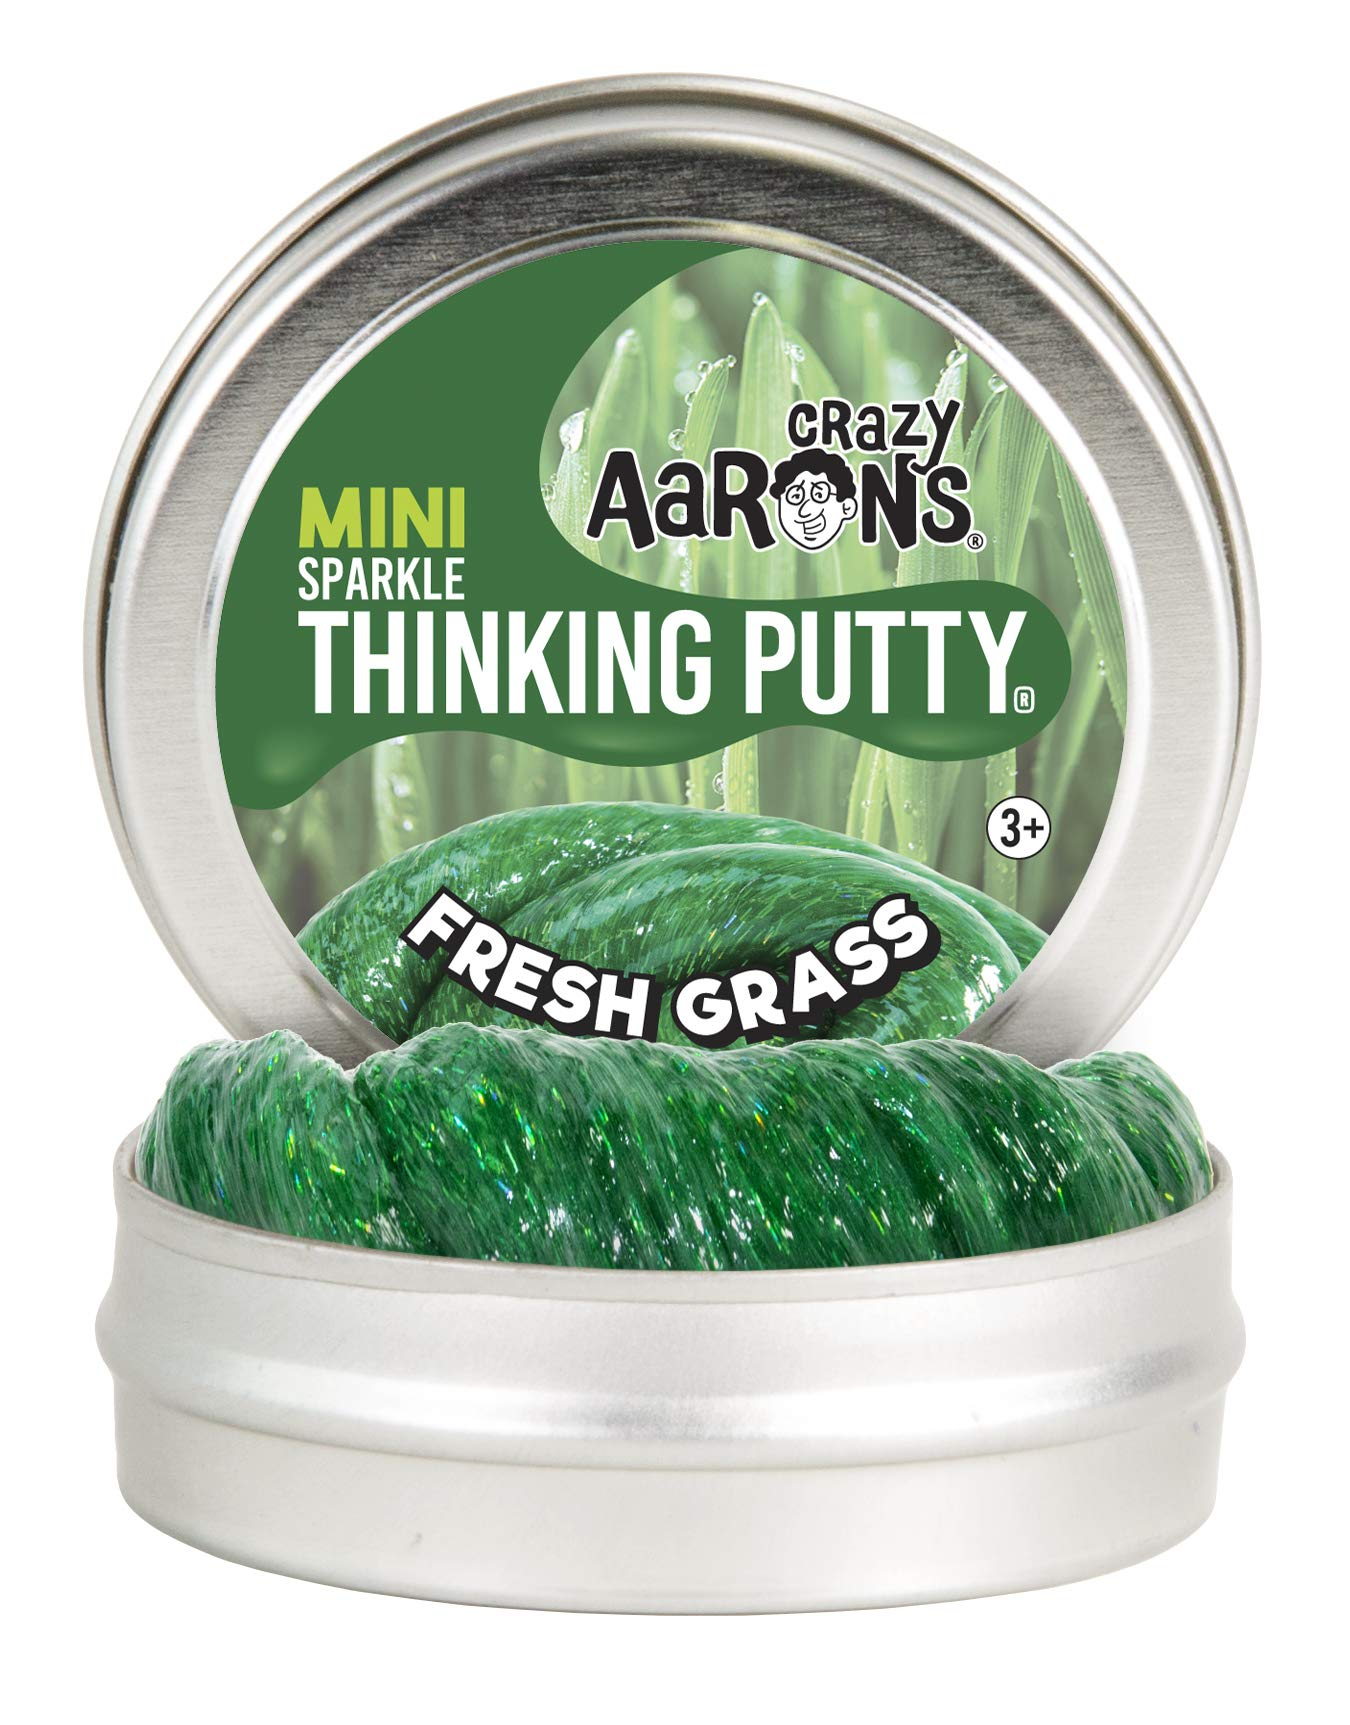 Crazy Aaron's Thinking Putty - Easter Trio 12 Pack - Spring Showers, Fresh Grass and Cheep Cheep Sparkle 2'' Mini Tins - Perfect as Easter Basket Stuffer! by Crazy Aaron's (Image #3)